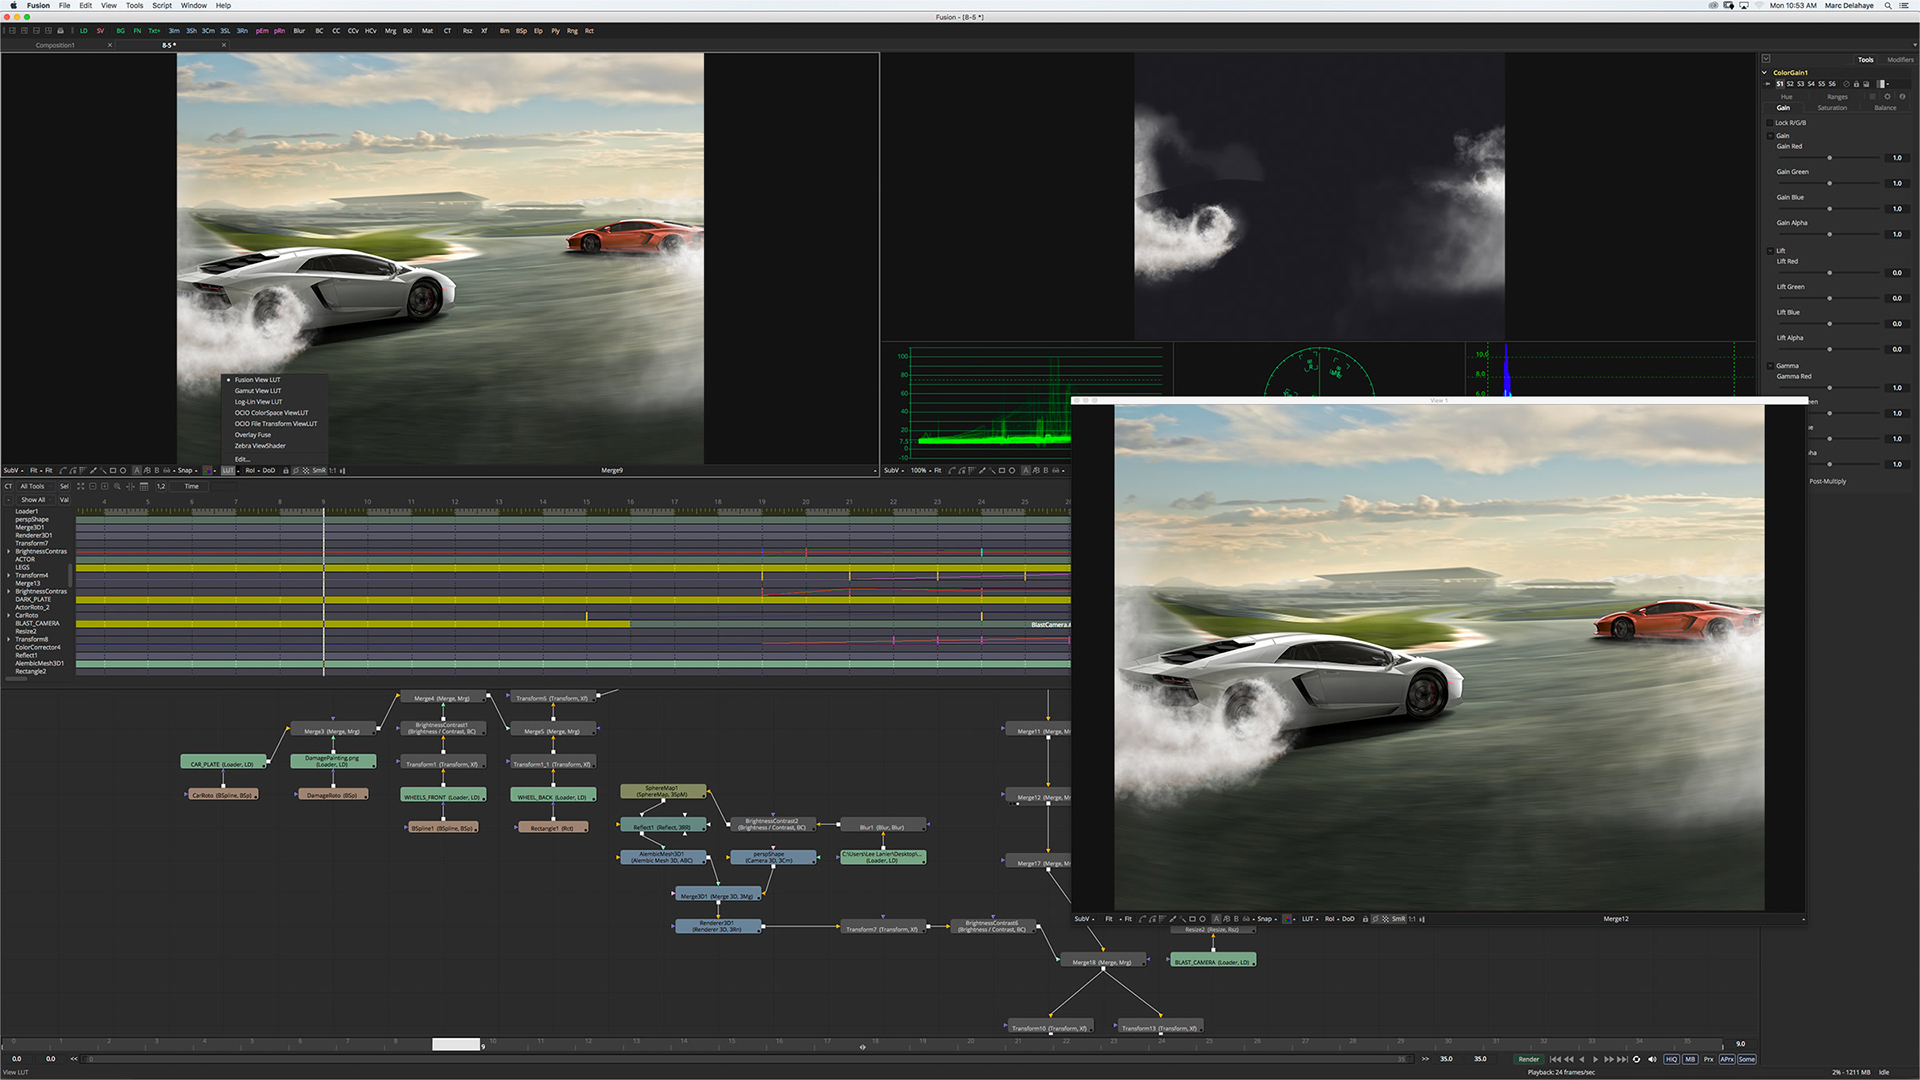 blackmagic design finally introduces fusion 8 for linux cinema5d